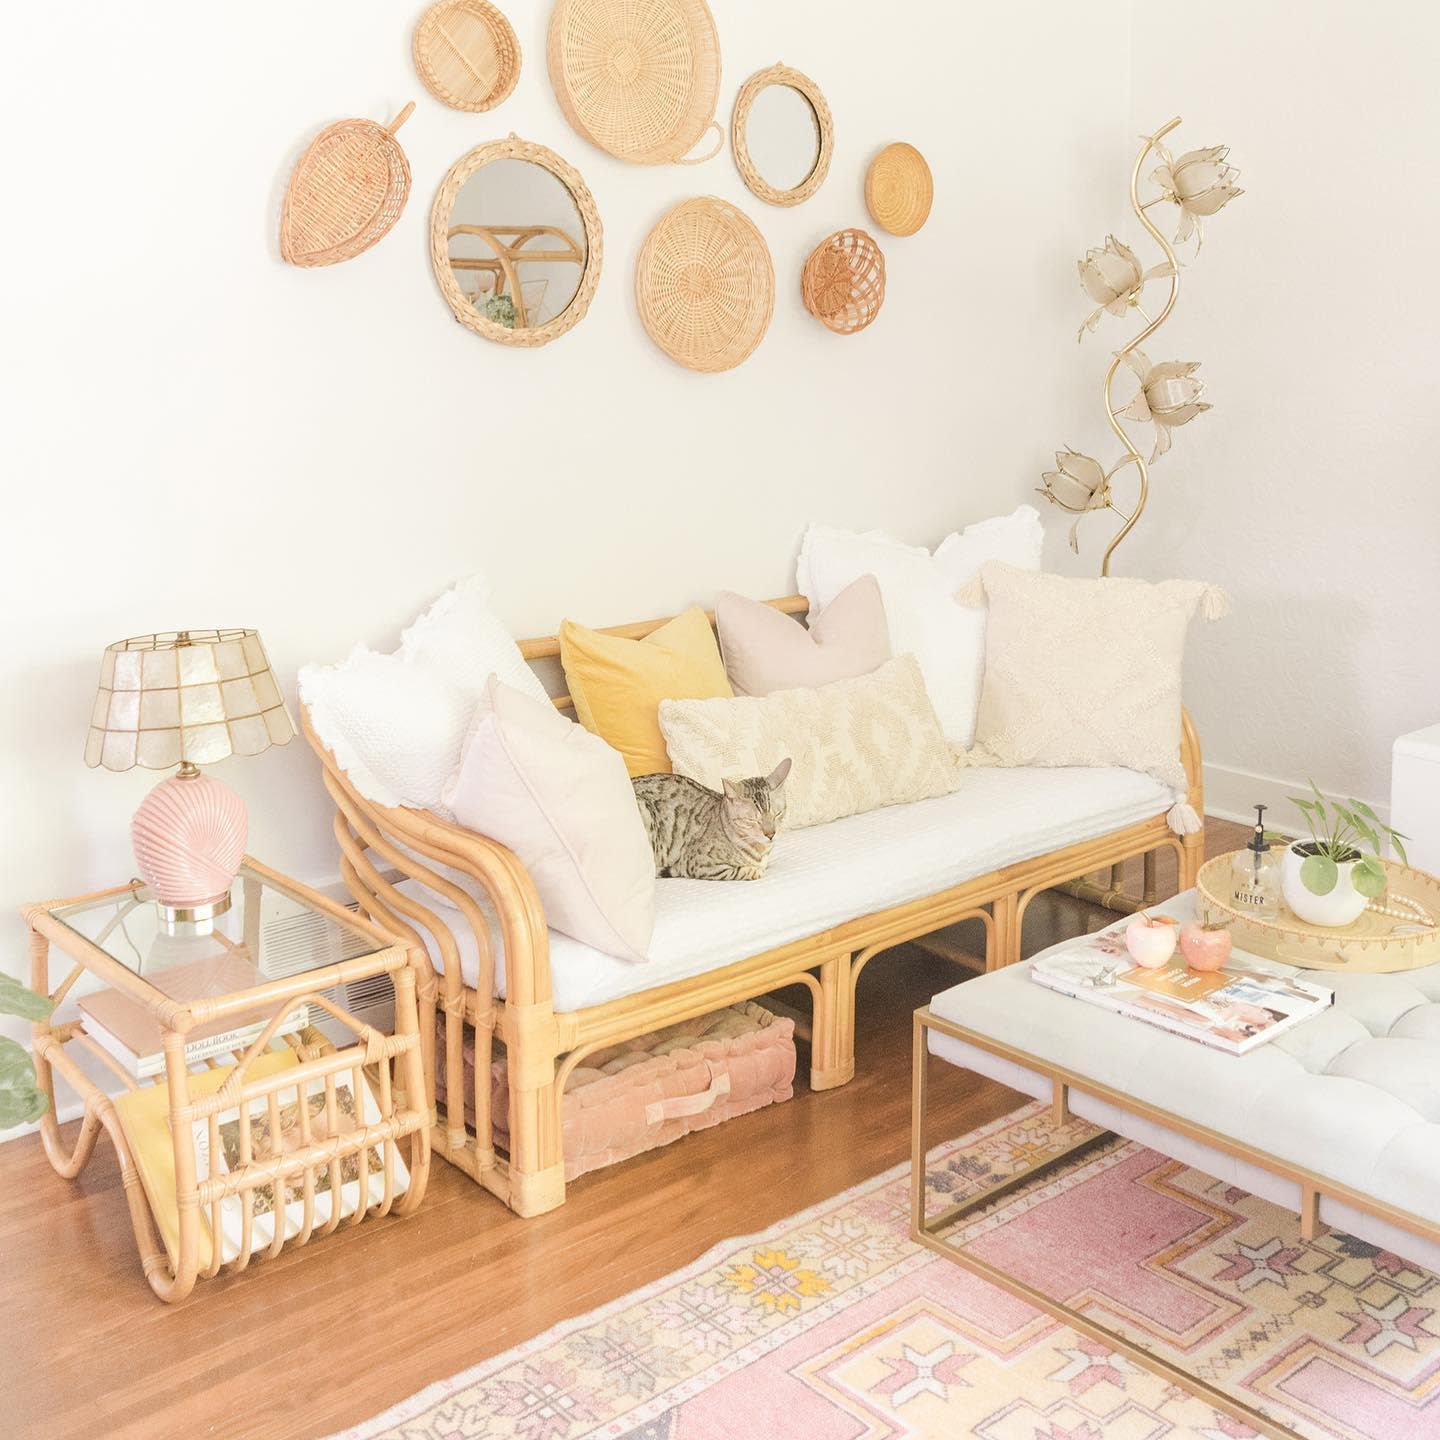 boho-aesthetic-room-ideas-thriftyrosehome